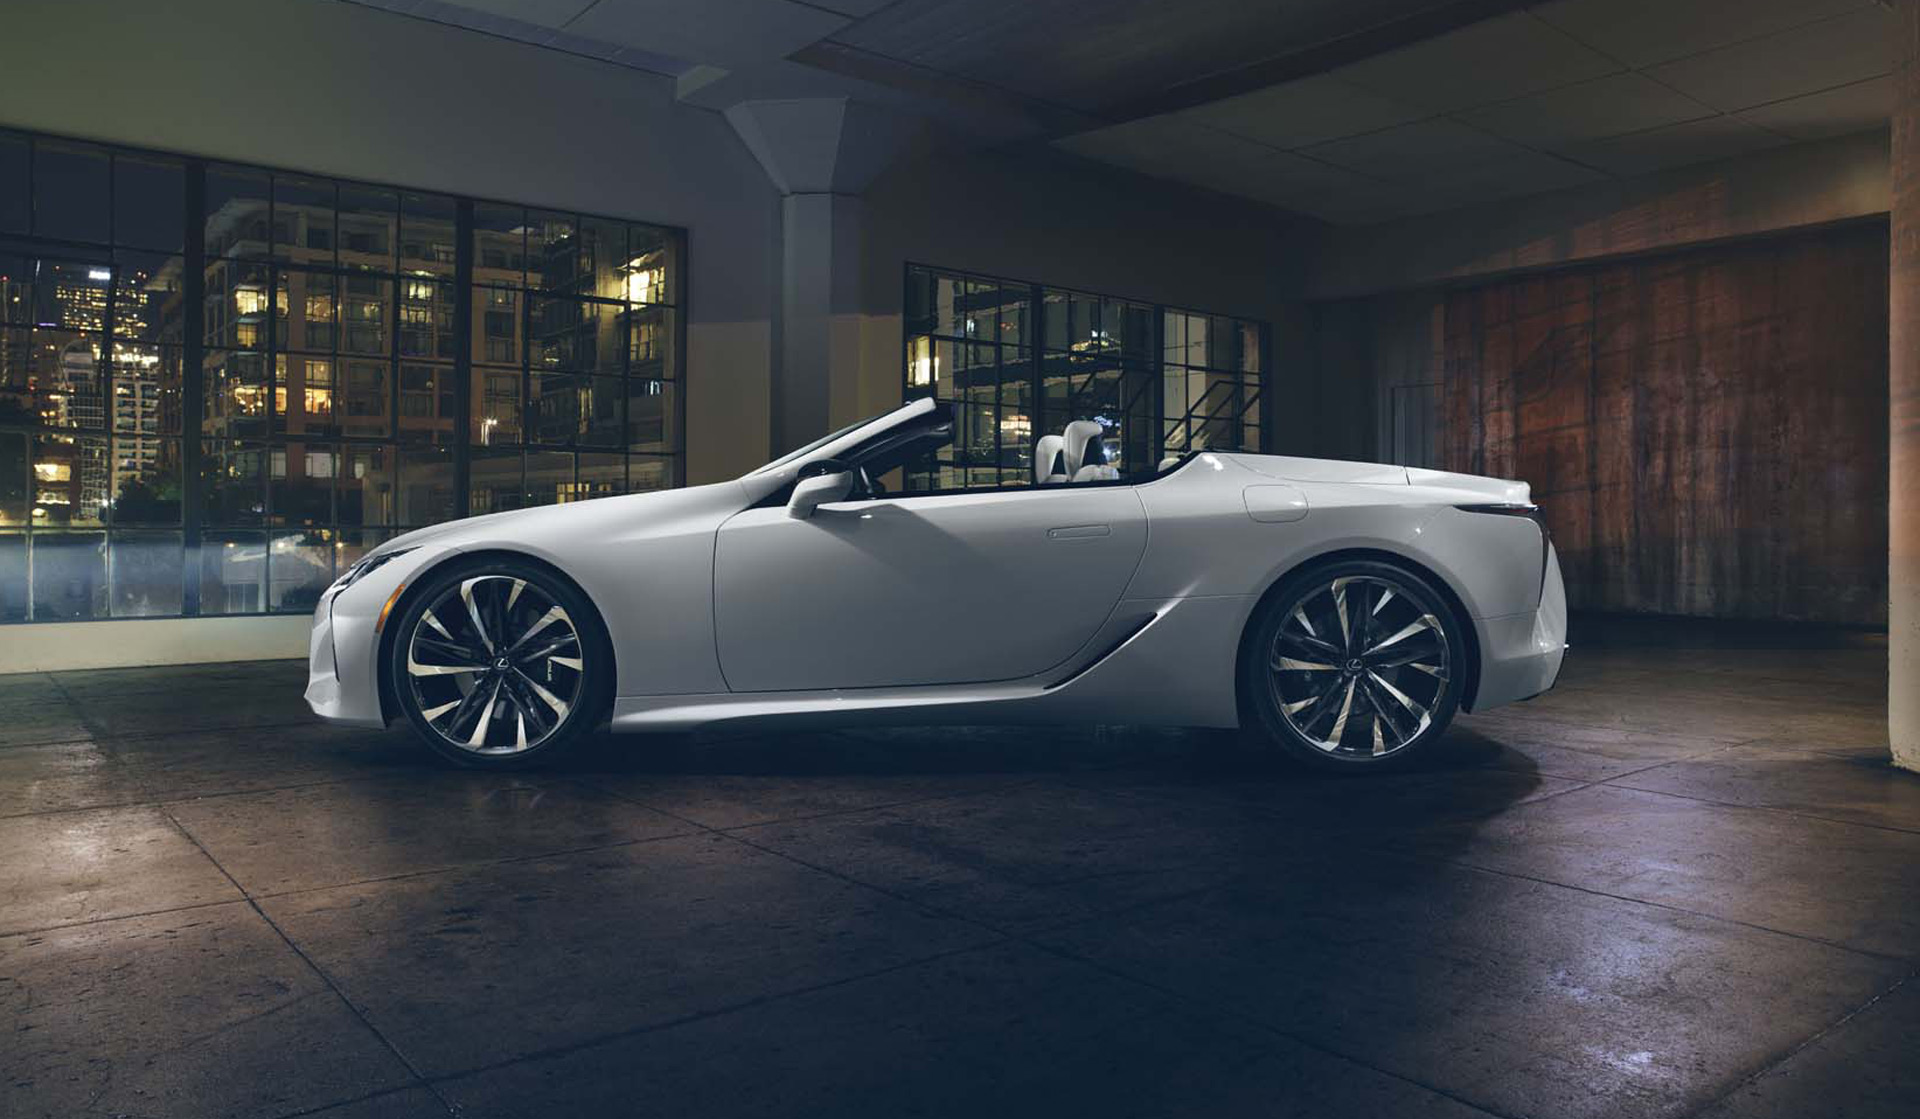 Lexus Lc Convertible Cadillac Ev Plans Toyota Supra Leak Today S Car News